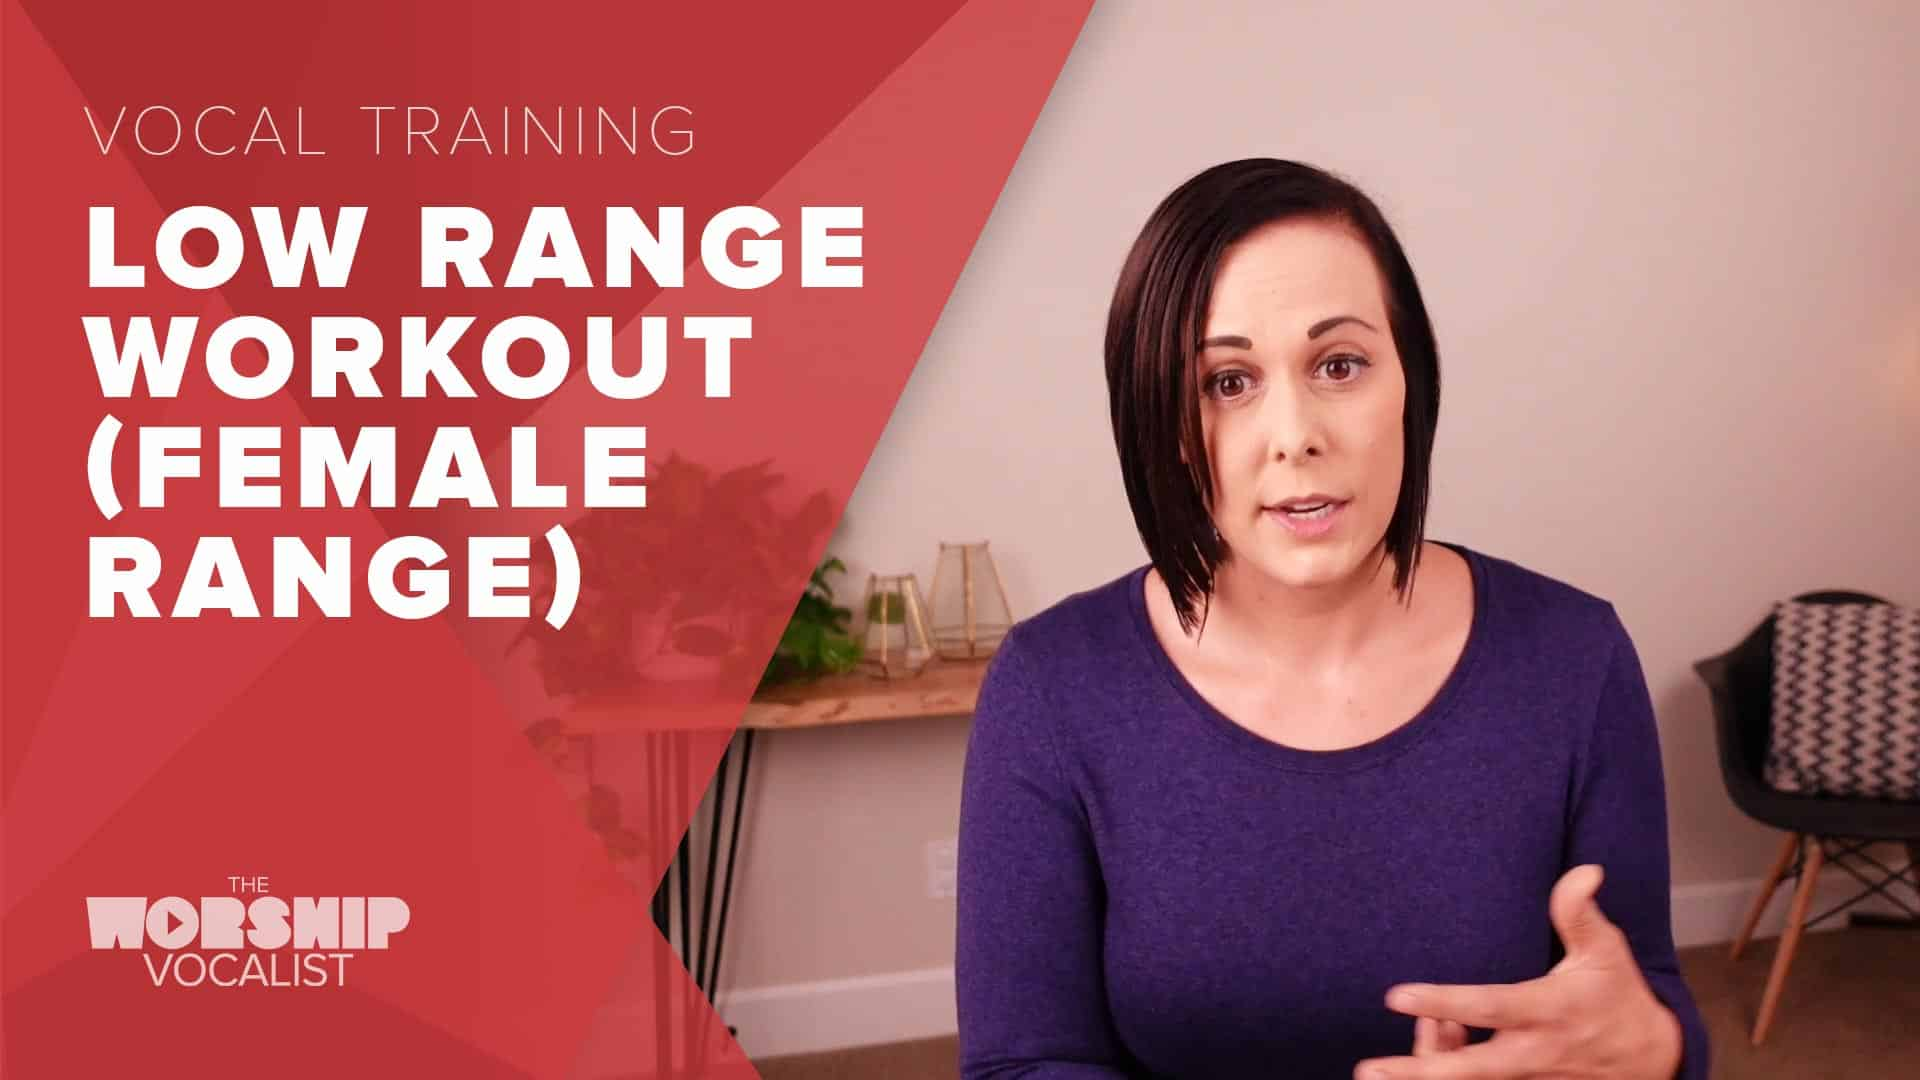 Low Range Workout - Female Range